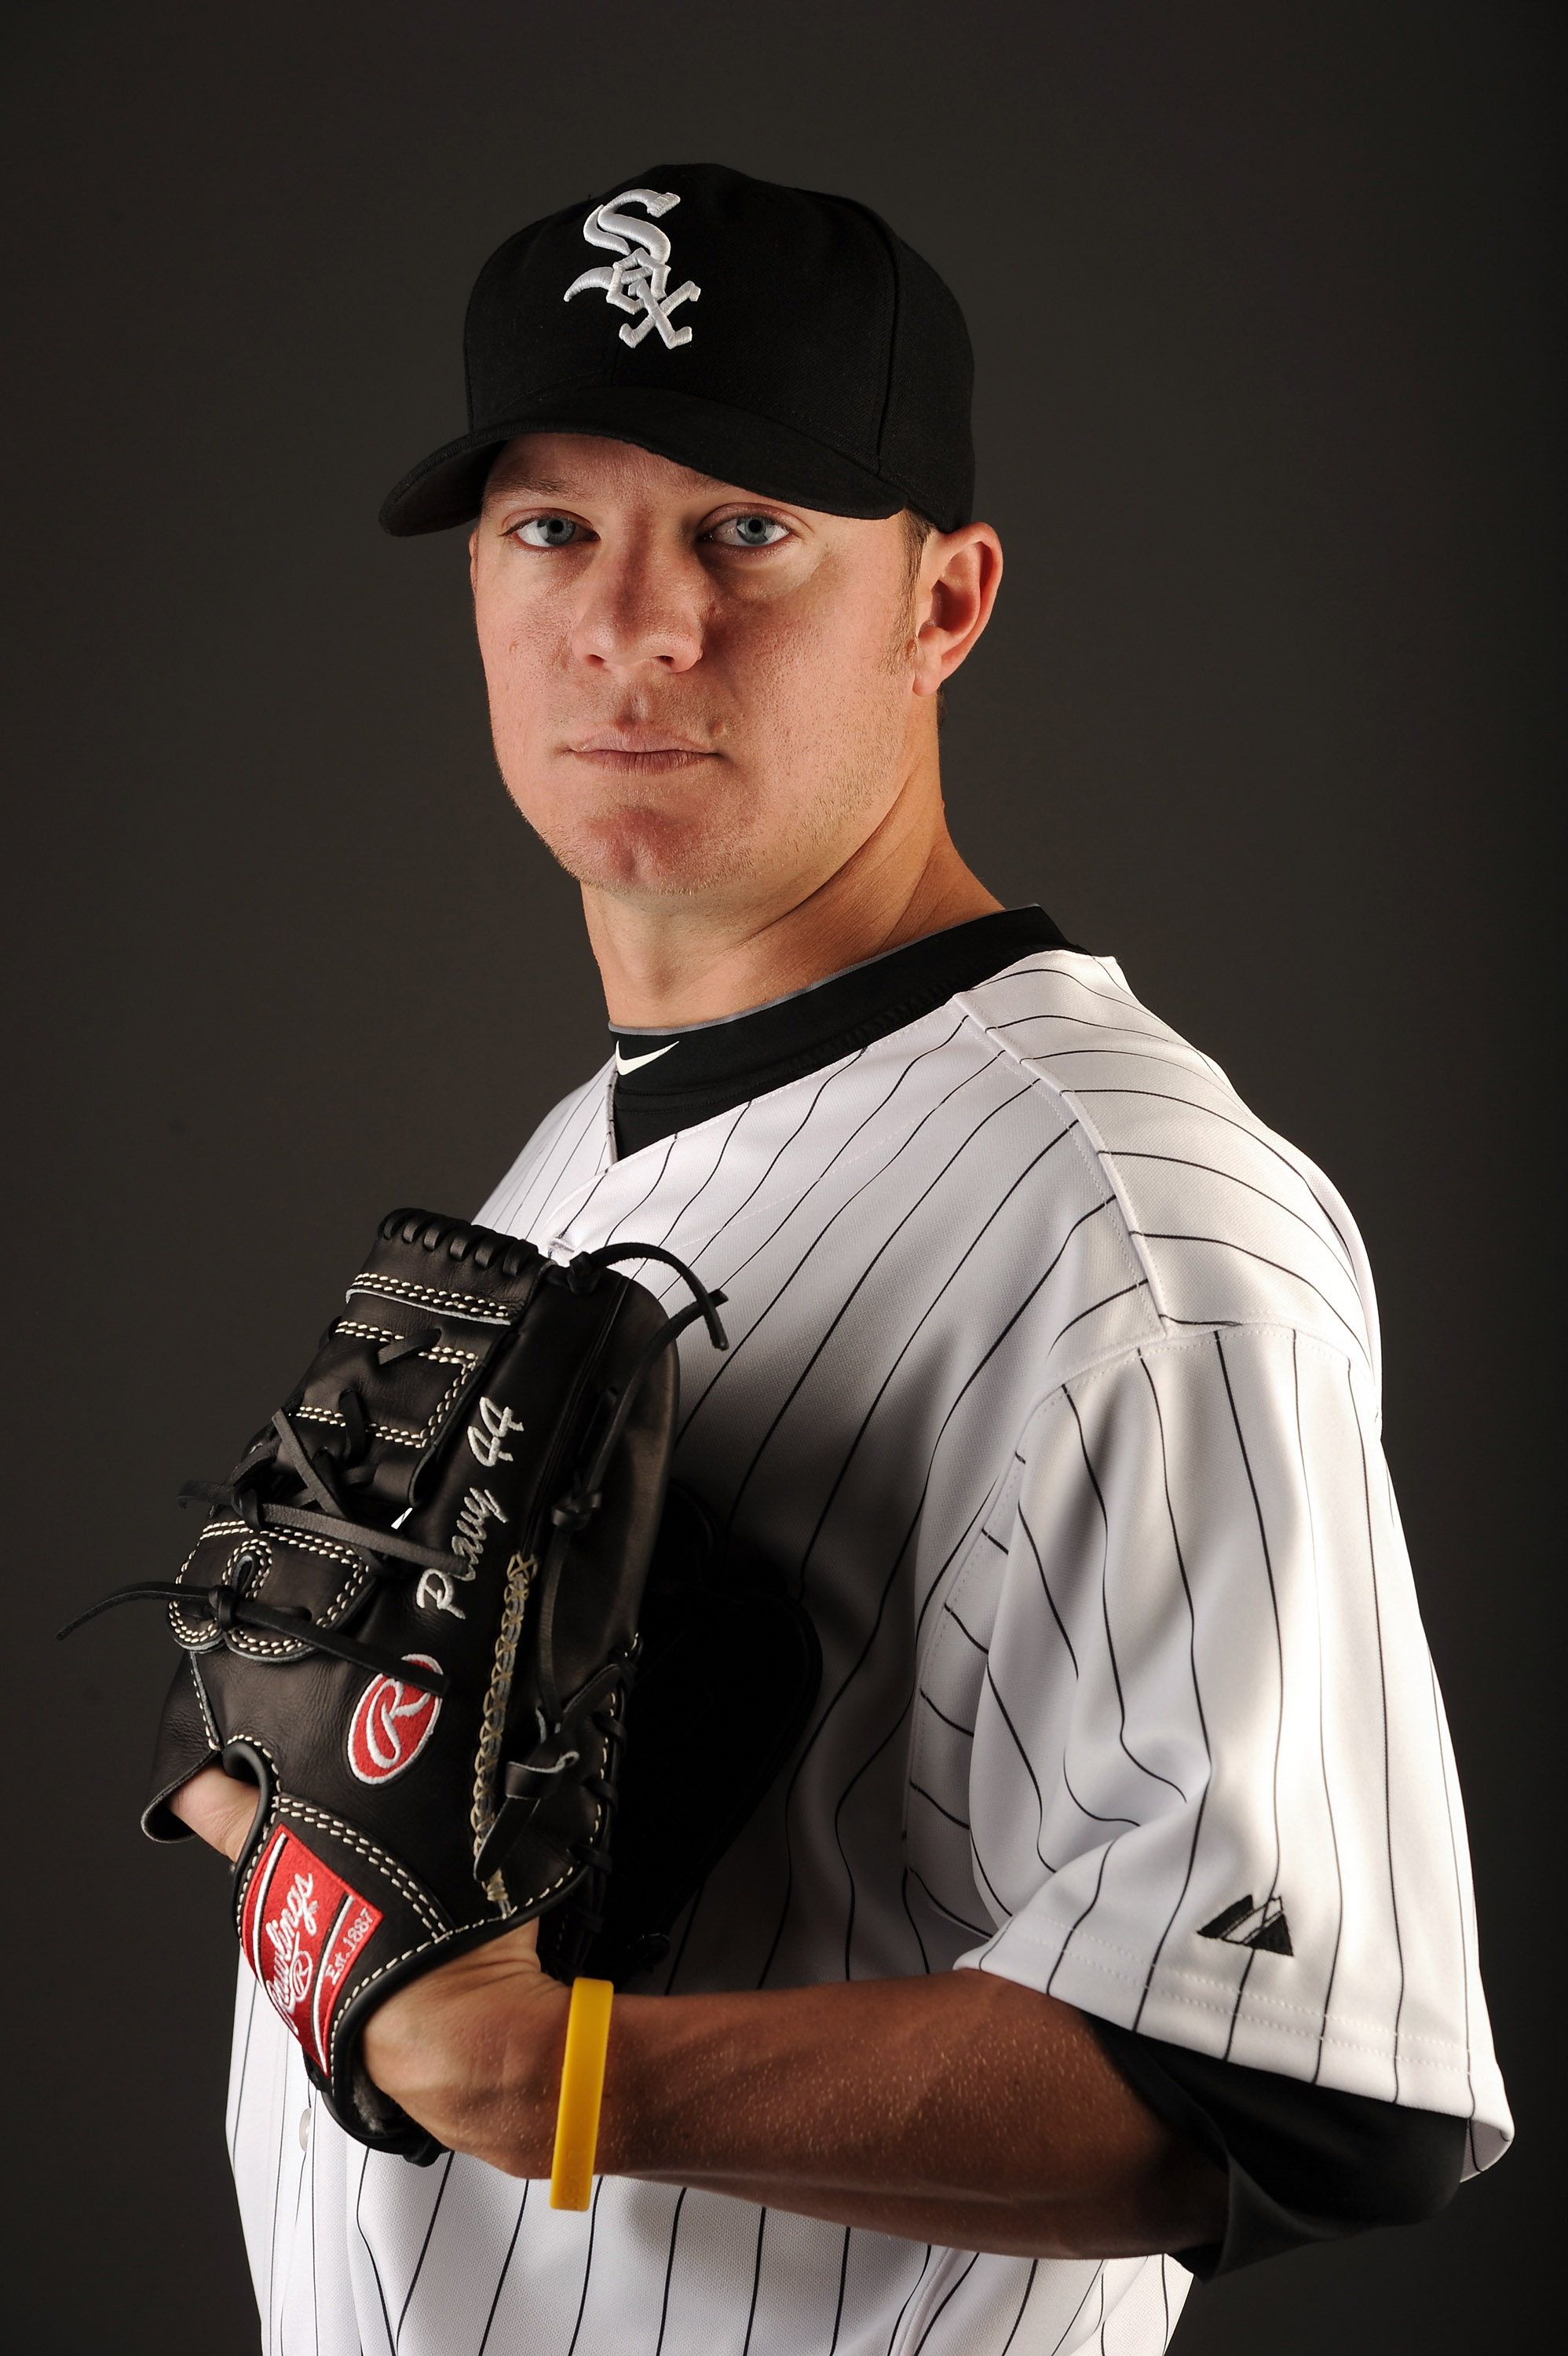 GLENDALE, AZ - FEBRUARY 26:  Jake Peavy #44 of the Chicago White Sox poses for a photo on photo day at Camelback Ranch on February 26, 2011 in Glendale, Arizona.  (Photo by Harry How/Getty Images)